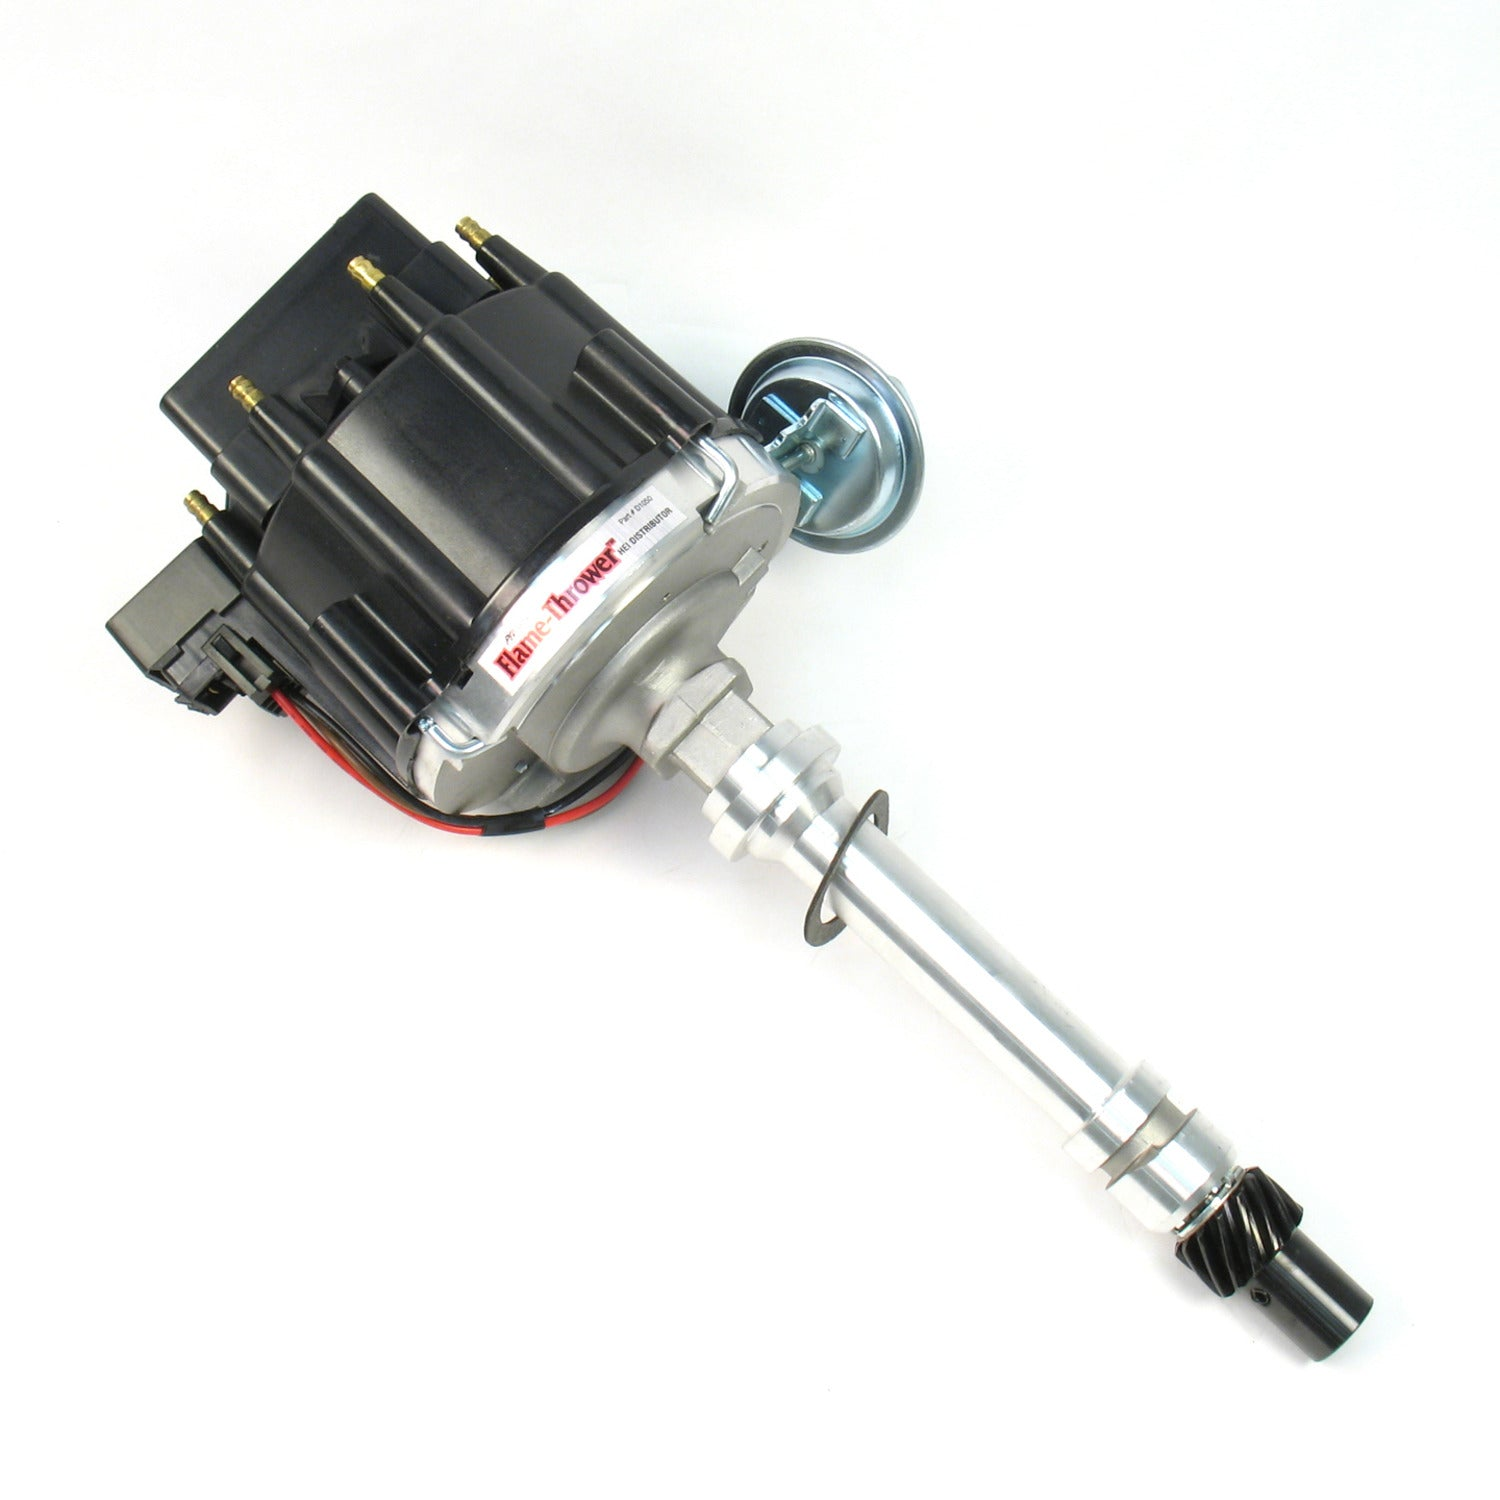 PerTronix D1050 Flame-Thrower Distributor HEI Chevrolet Small Block/Big Block Black Cap Machine Polished